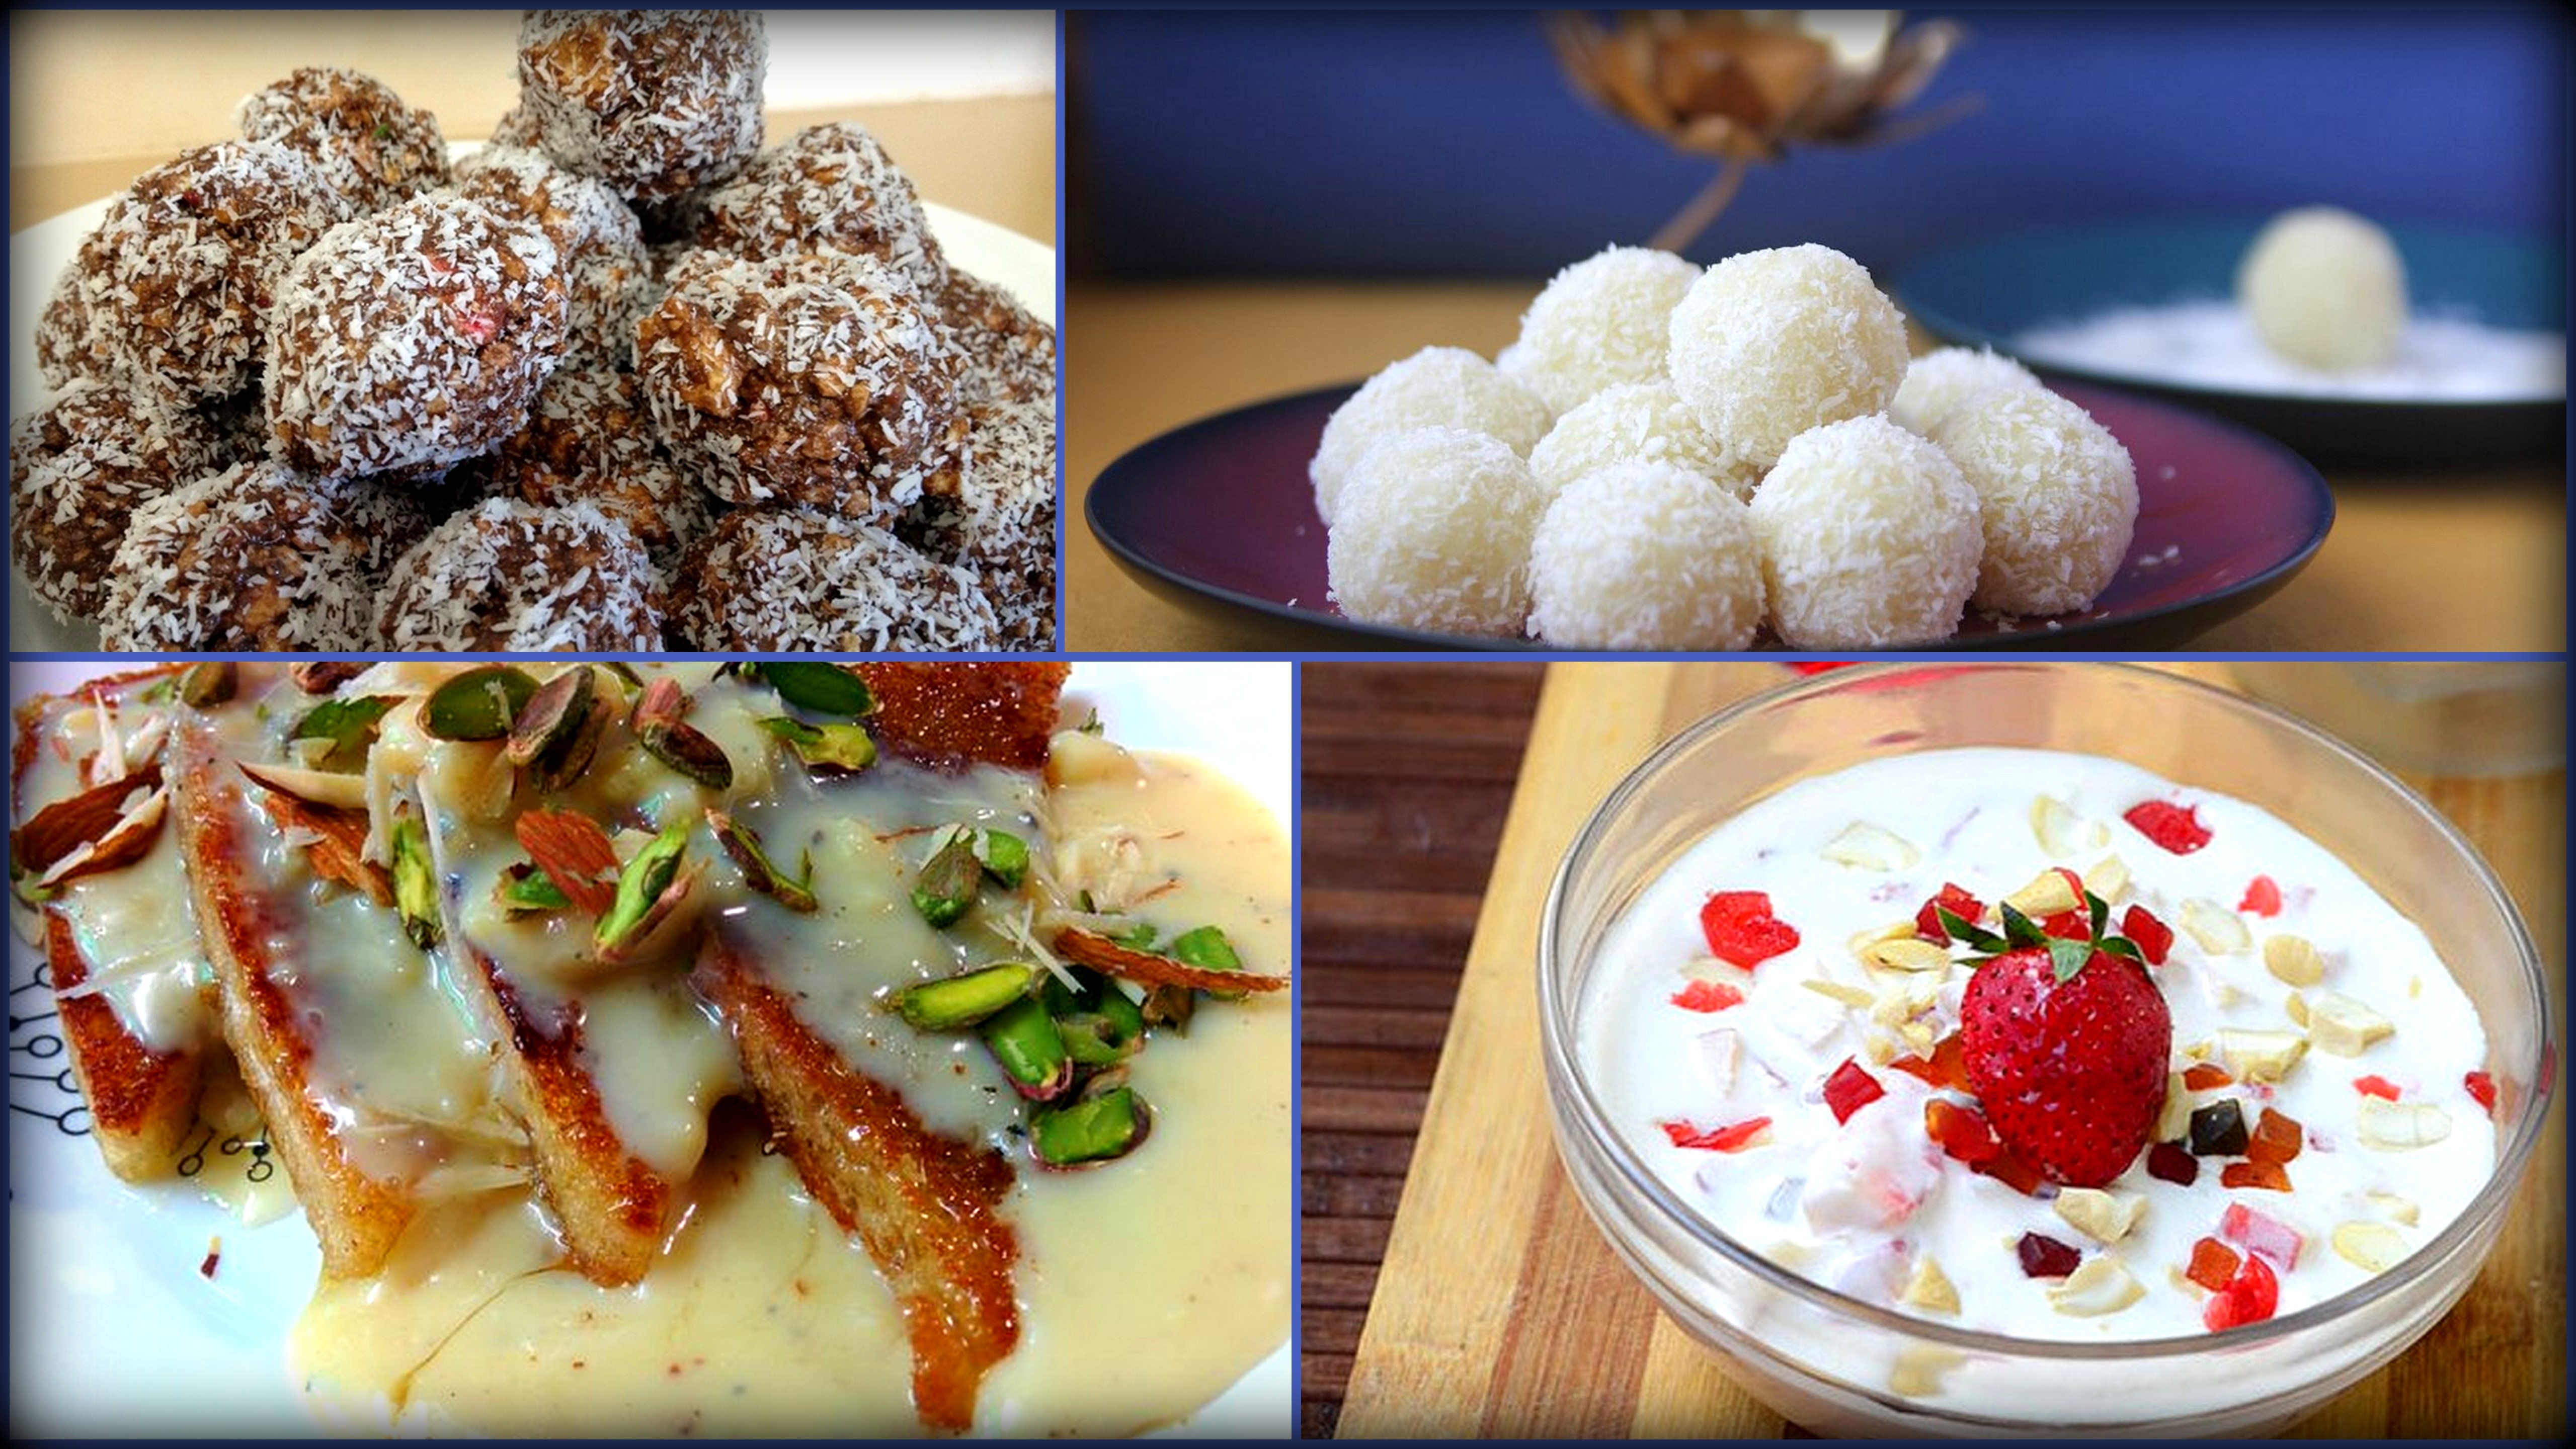 QUICK 5 MINUTE RECIPES FOR THIS DIWALI